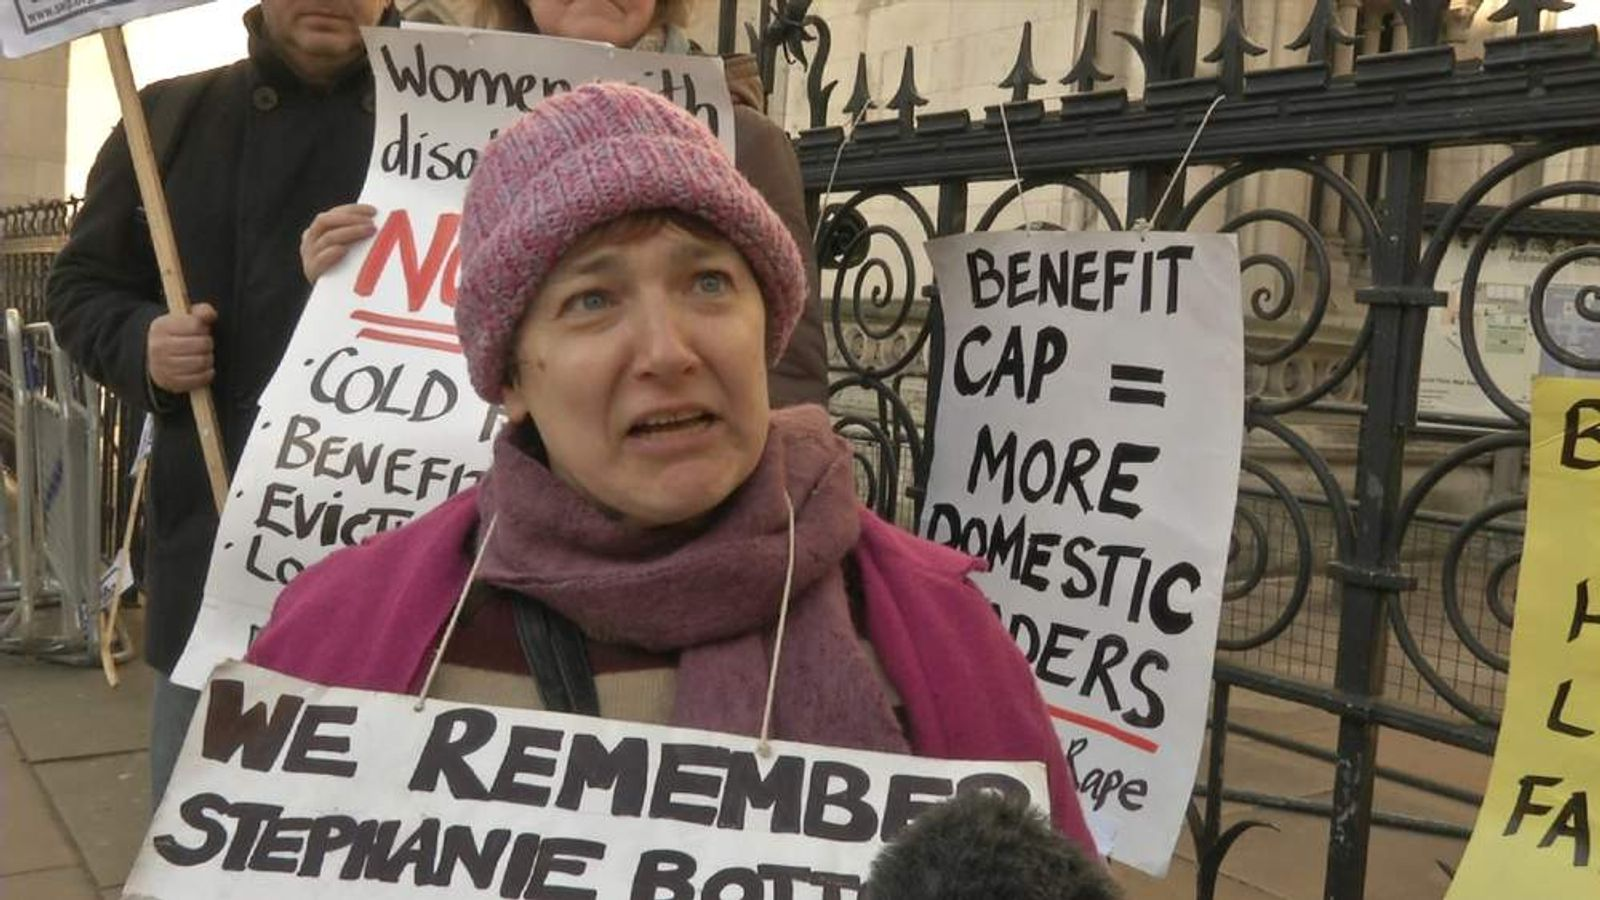 An anti-bedroom tax protester outside the court